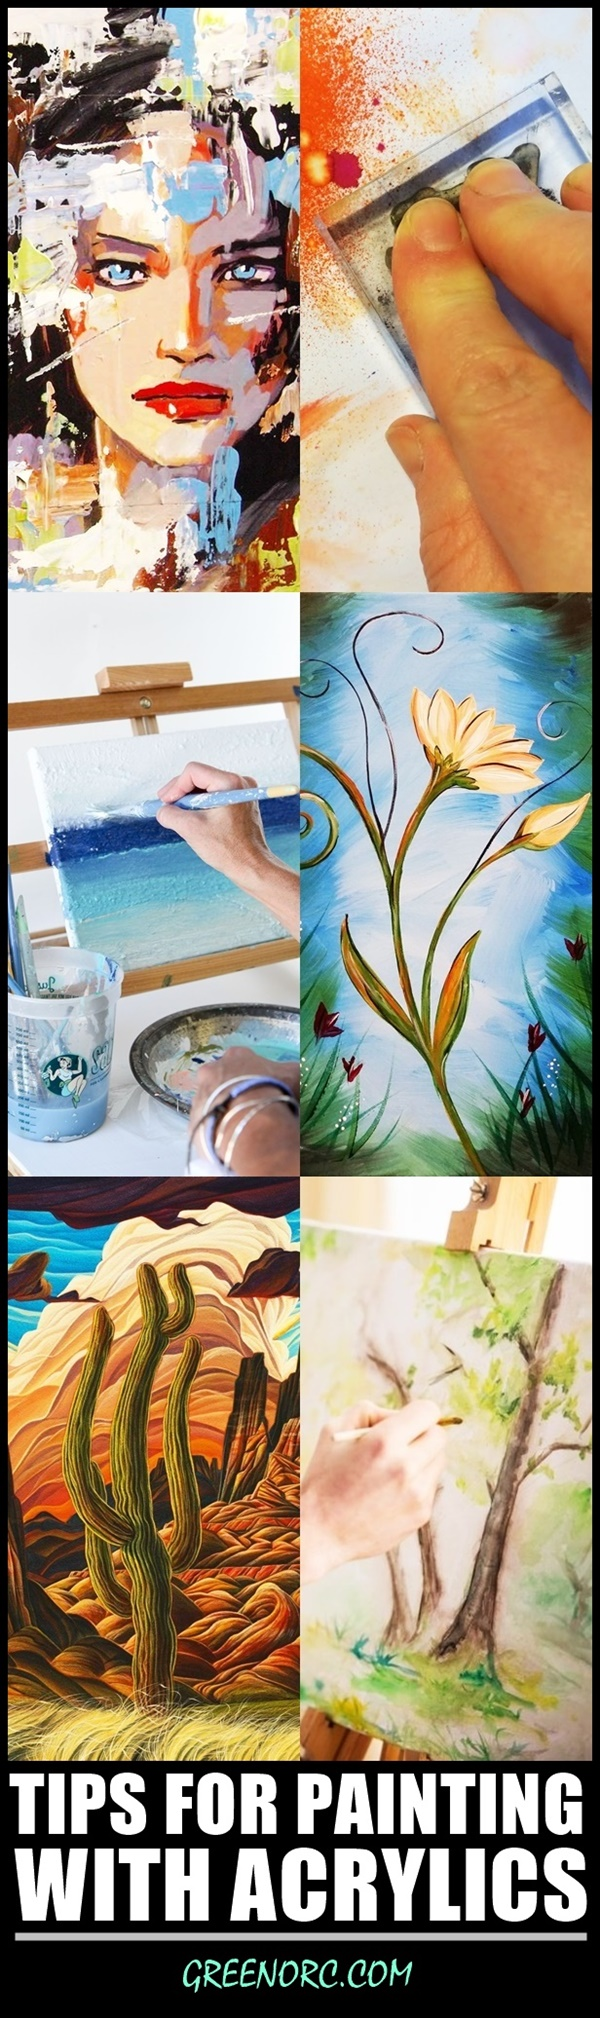 Tips-For-Painting-With-Acrylics